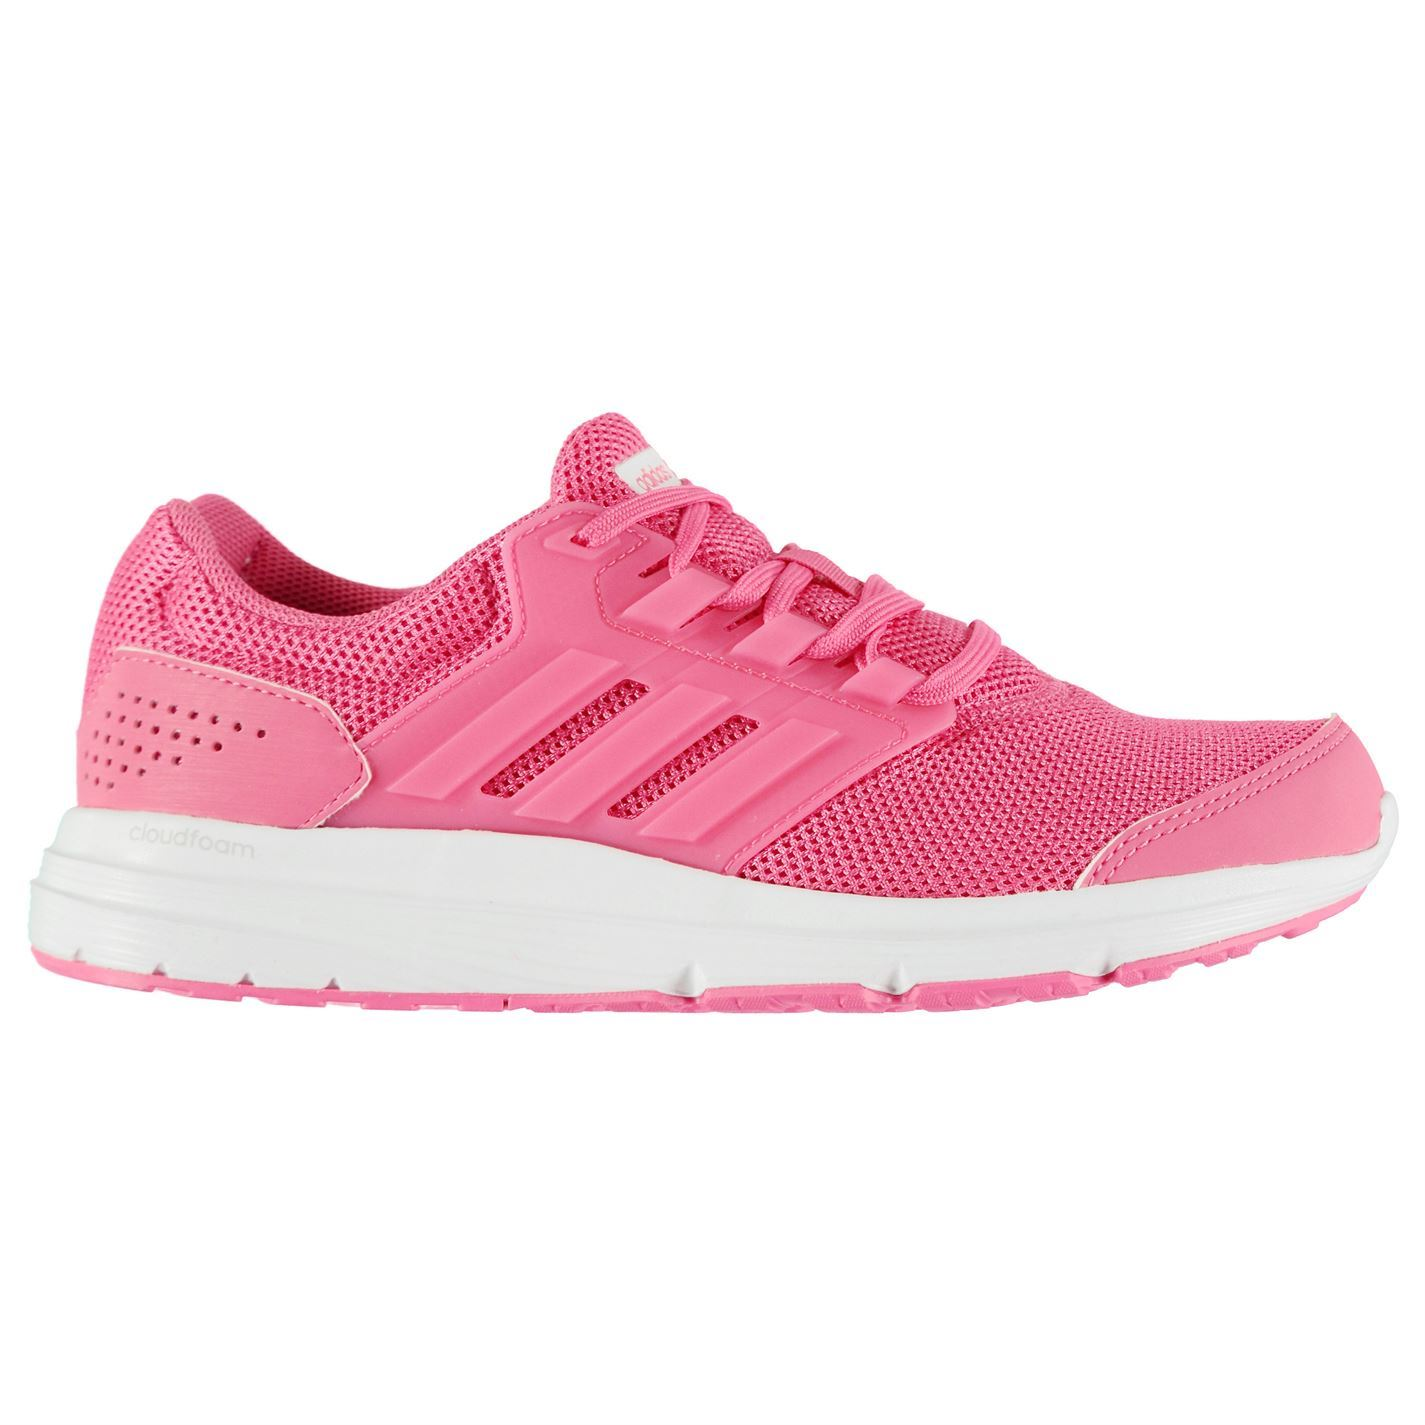 ... where can i buy adidas galaxy 4 running shoes womens pink white run  jogging trainers sneakers 462eedb08